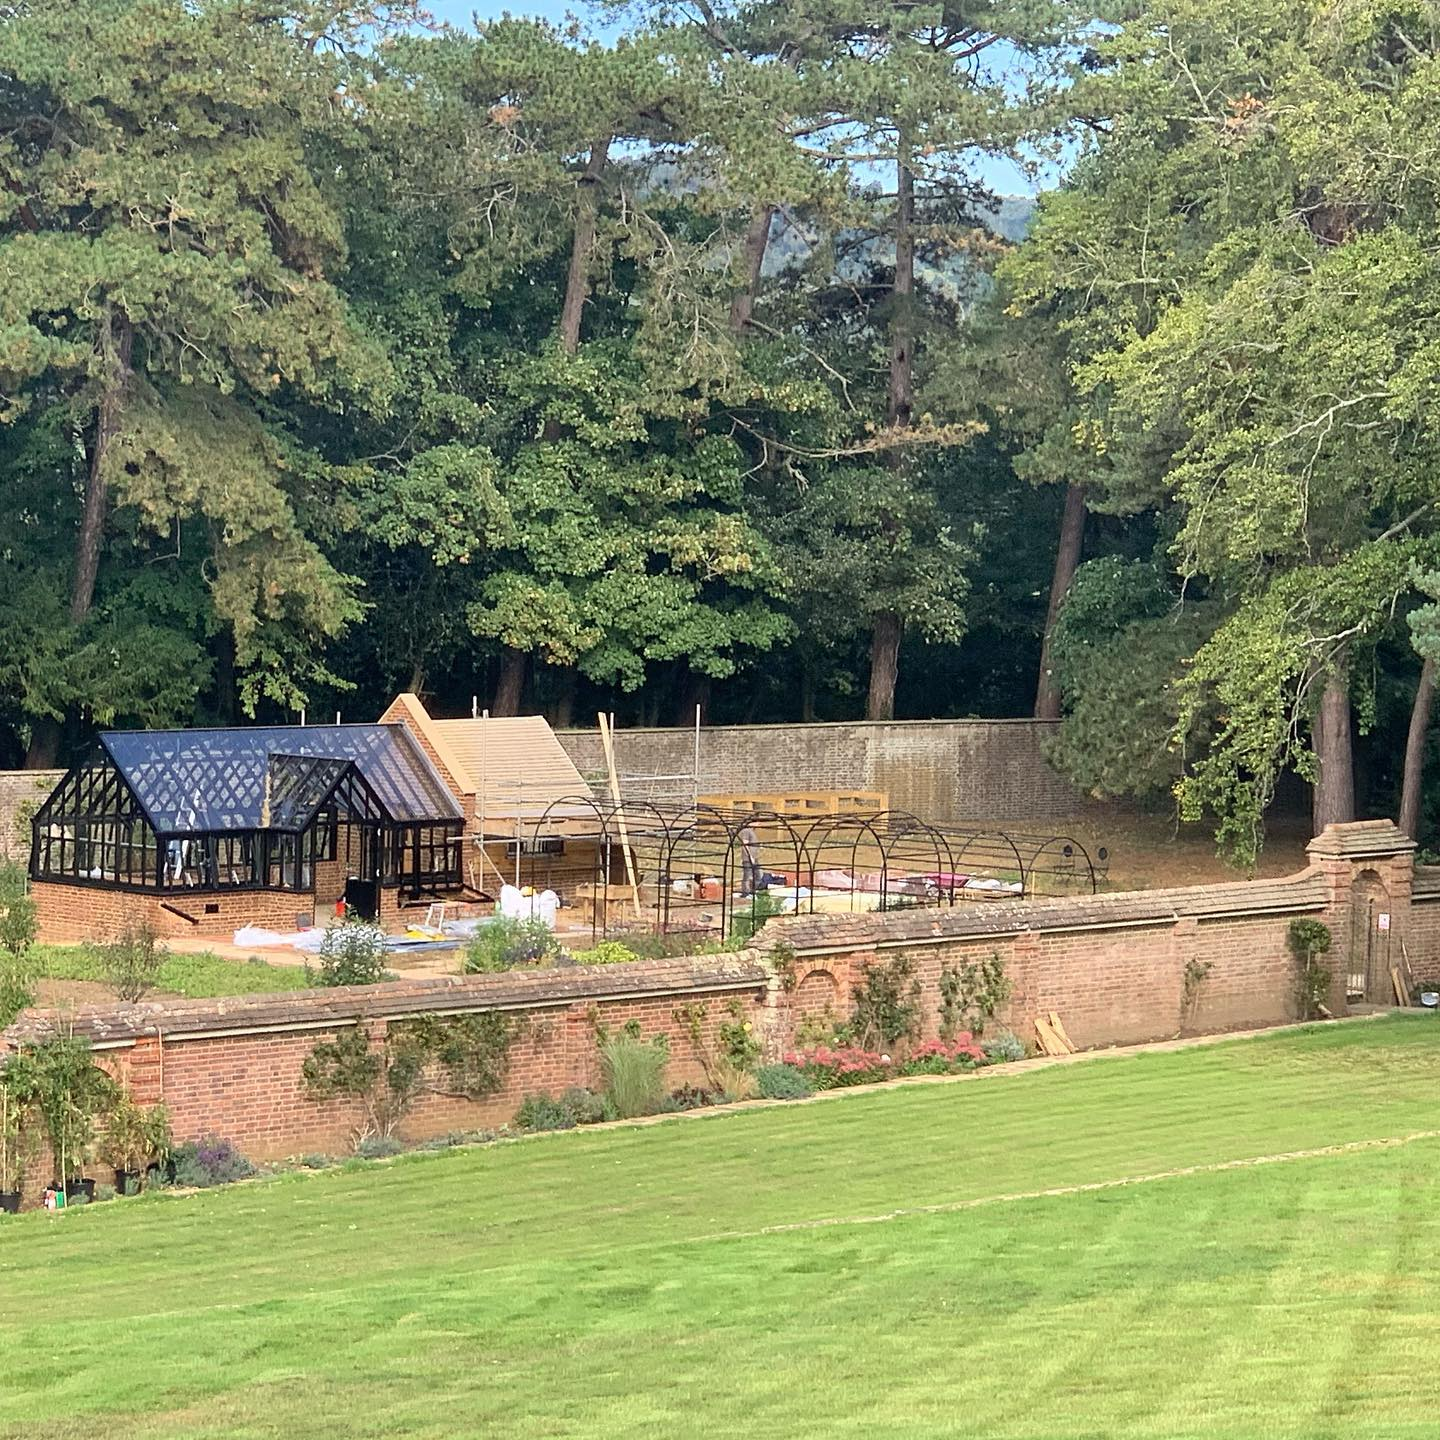 Great progress in the last week on our Surrey cut flower, veg and orchard garden project. So exciting to see this old walled garden becoming a productive vibrant space again! Great work @griffinglasshousesltd @roundwoodofmayfield @harrodhorticultural @belderboslandscapes @majestictrees1